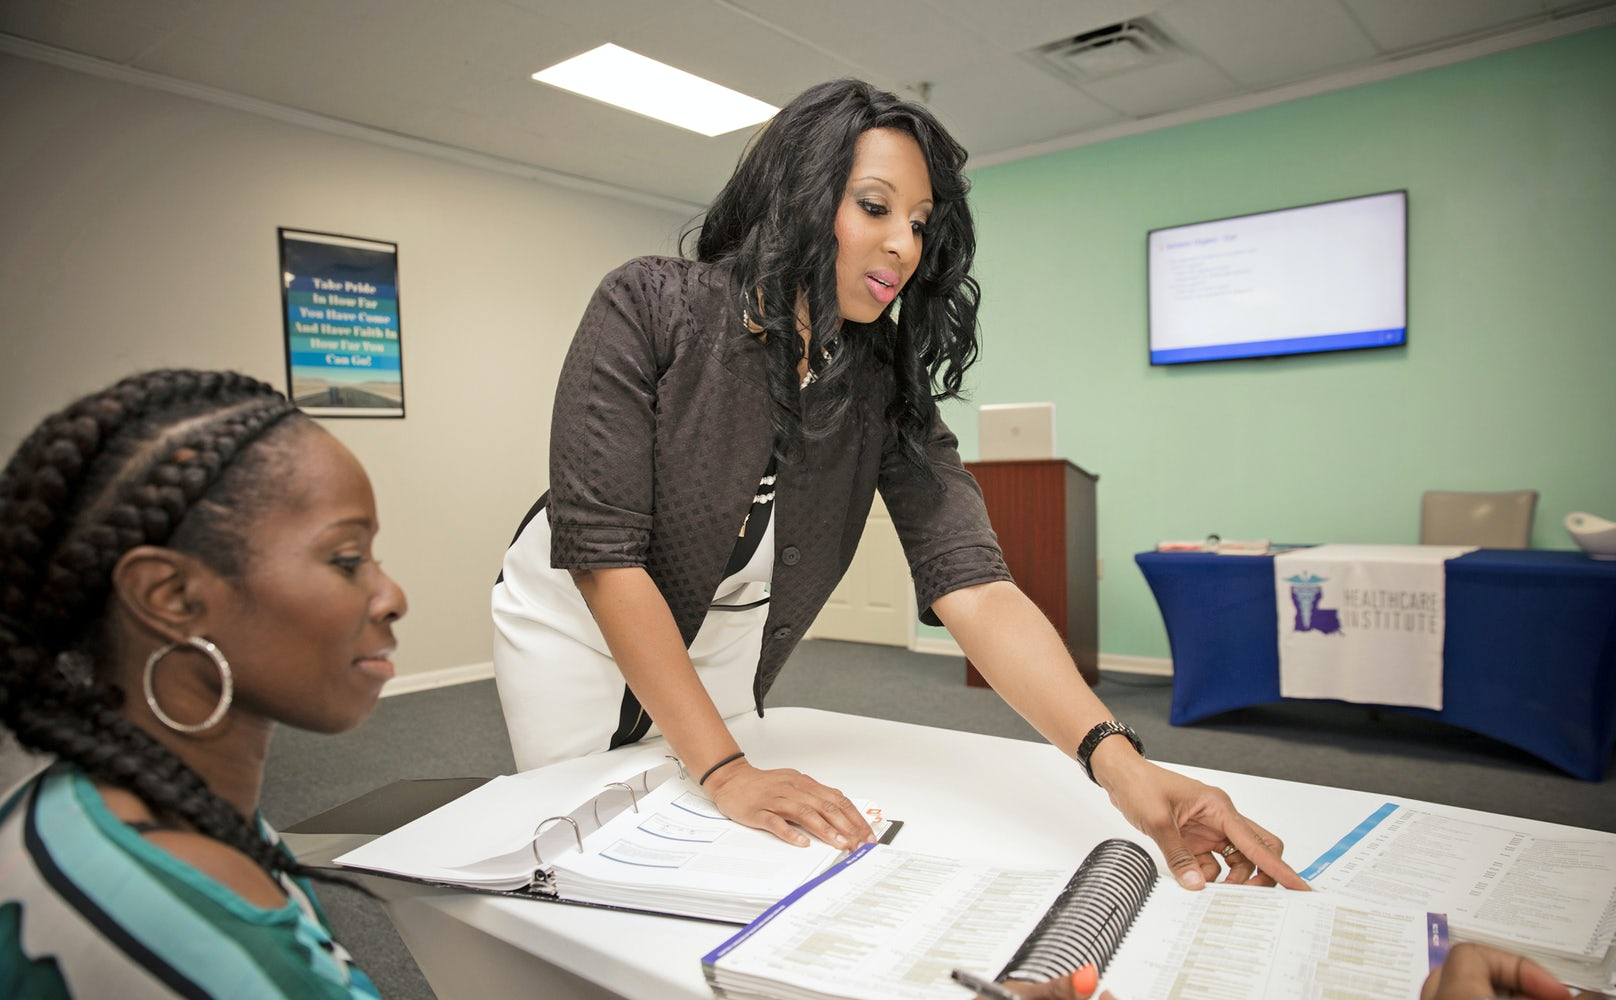 A Shortage Of Medical Coders Prompts A Baton Rouge Entrepreneur To